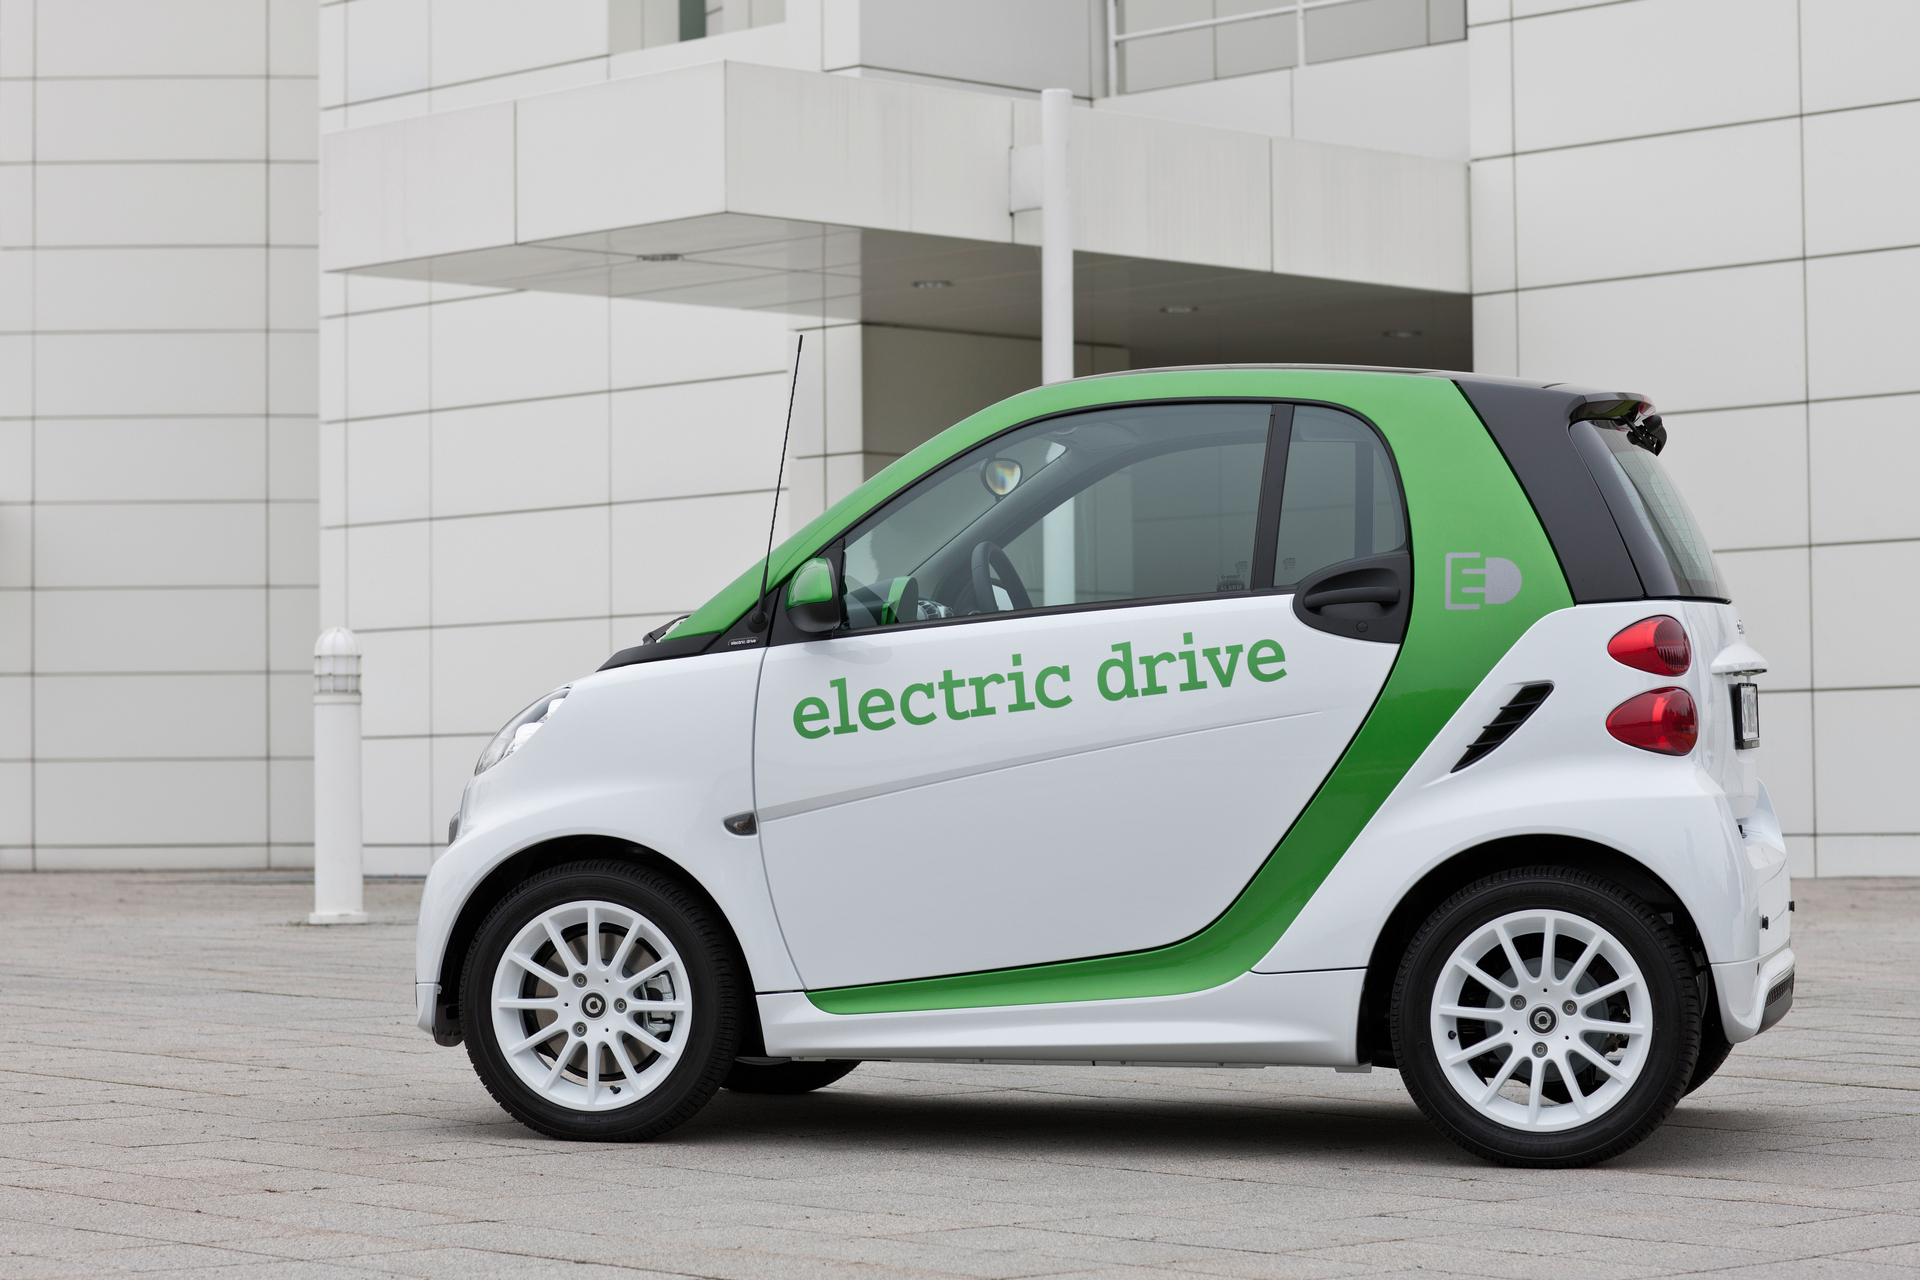 Is A Smart Car All Electric